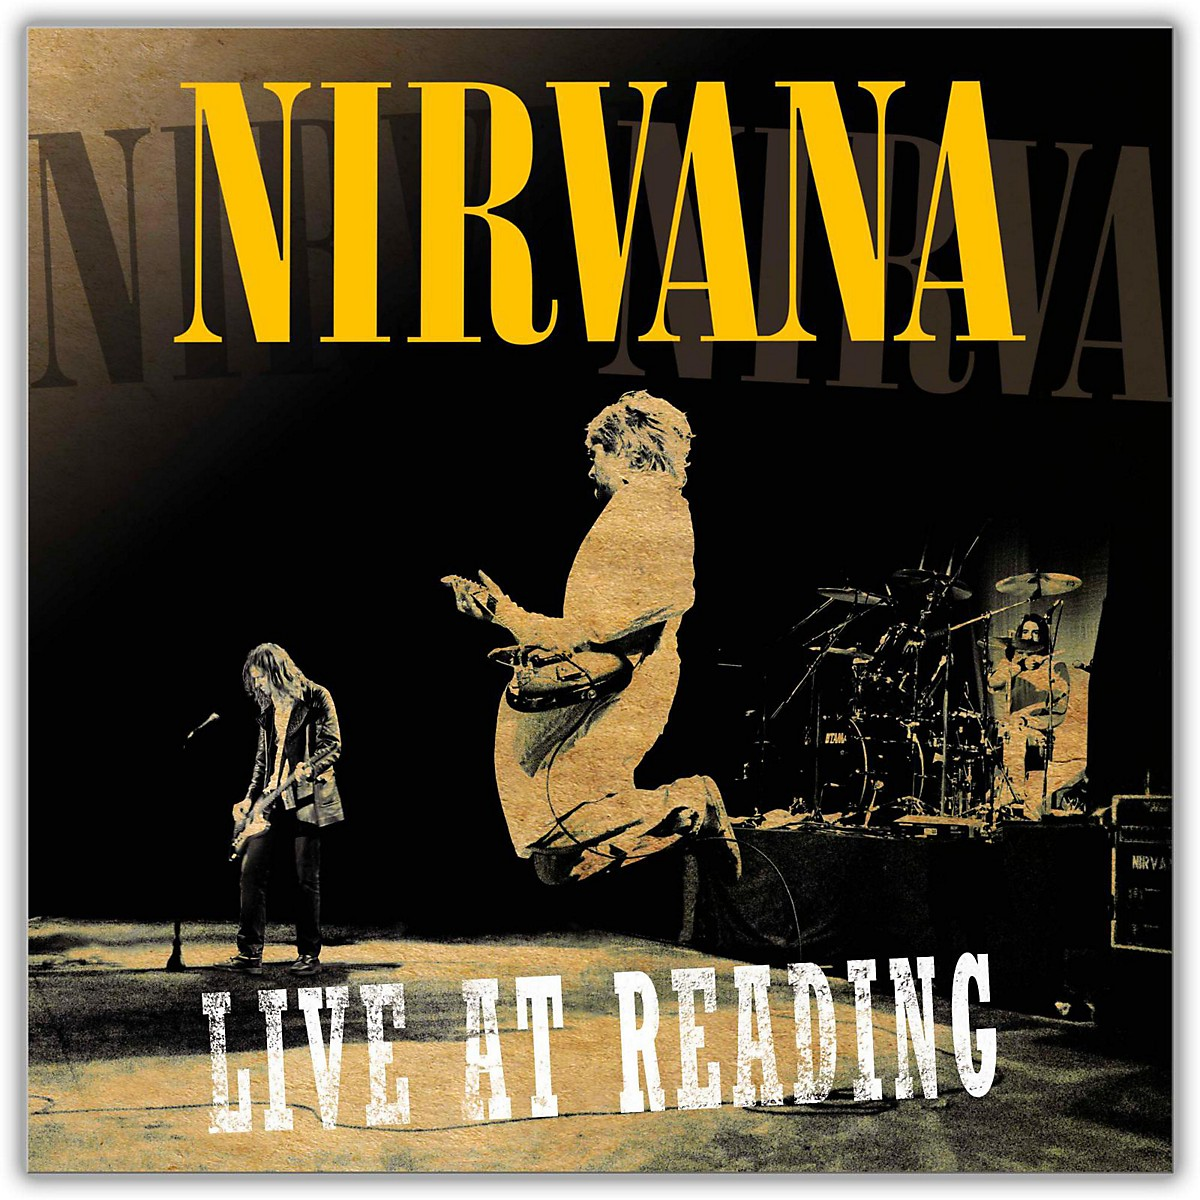 Universal Music Group Nirvana - Live at Reading Vinyl LP